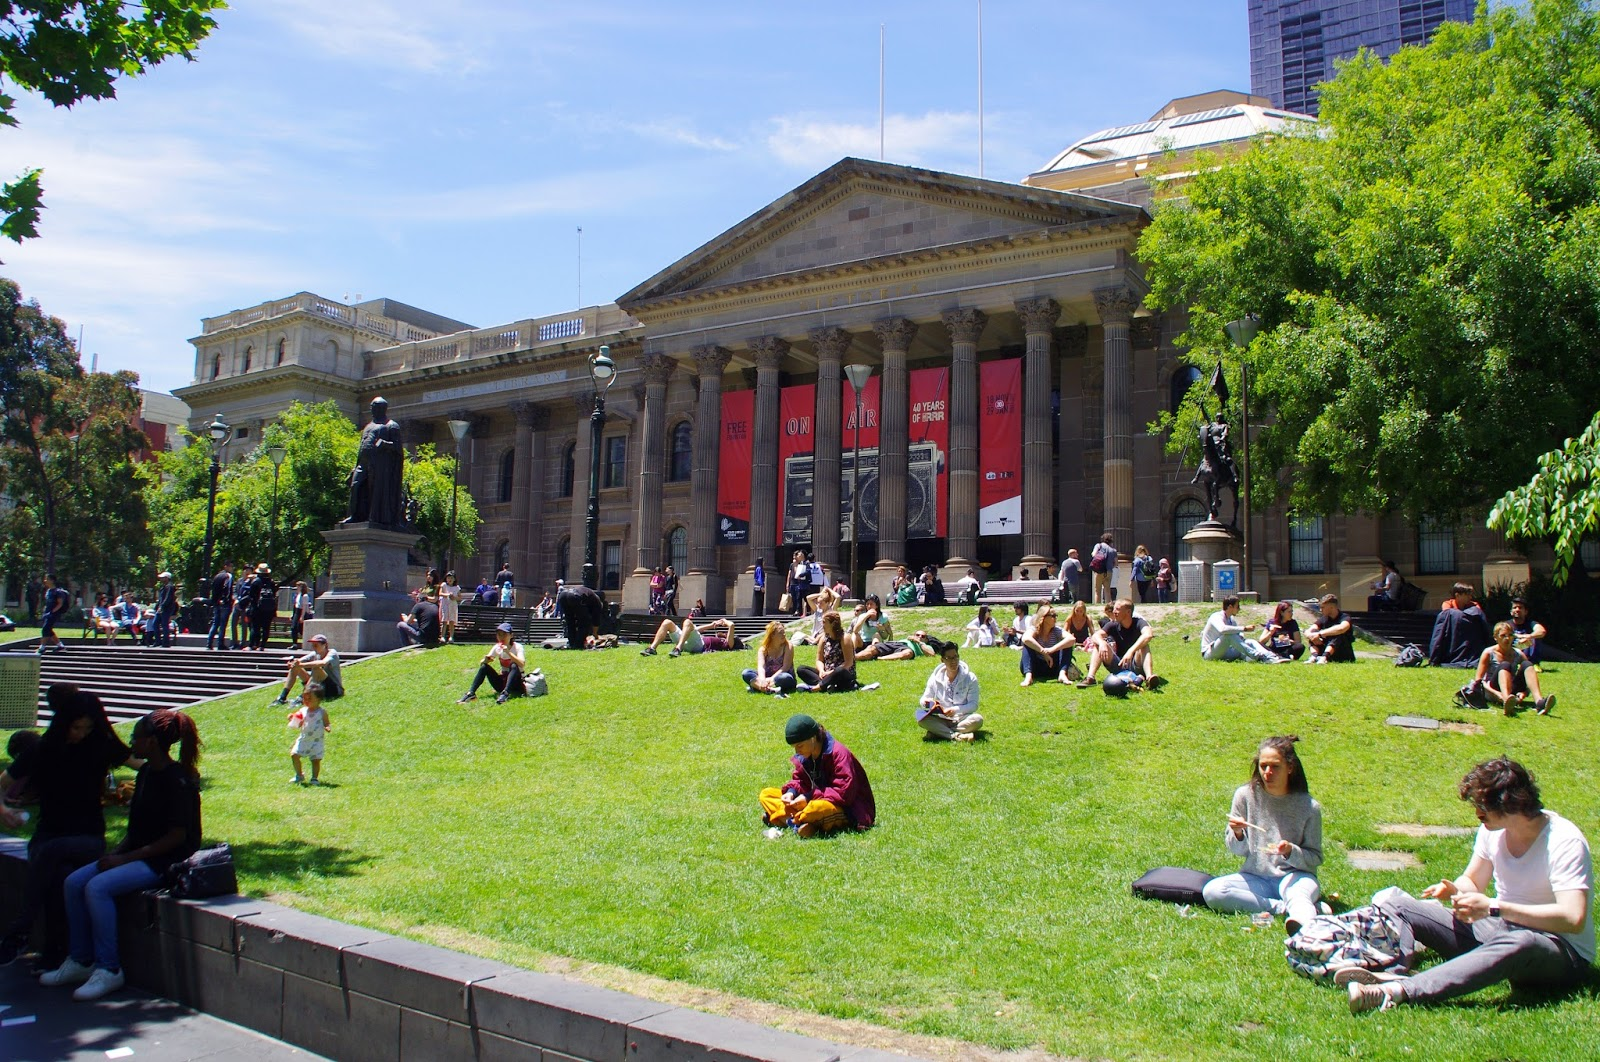 Melbourne State Library